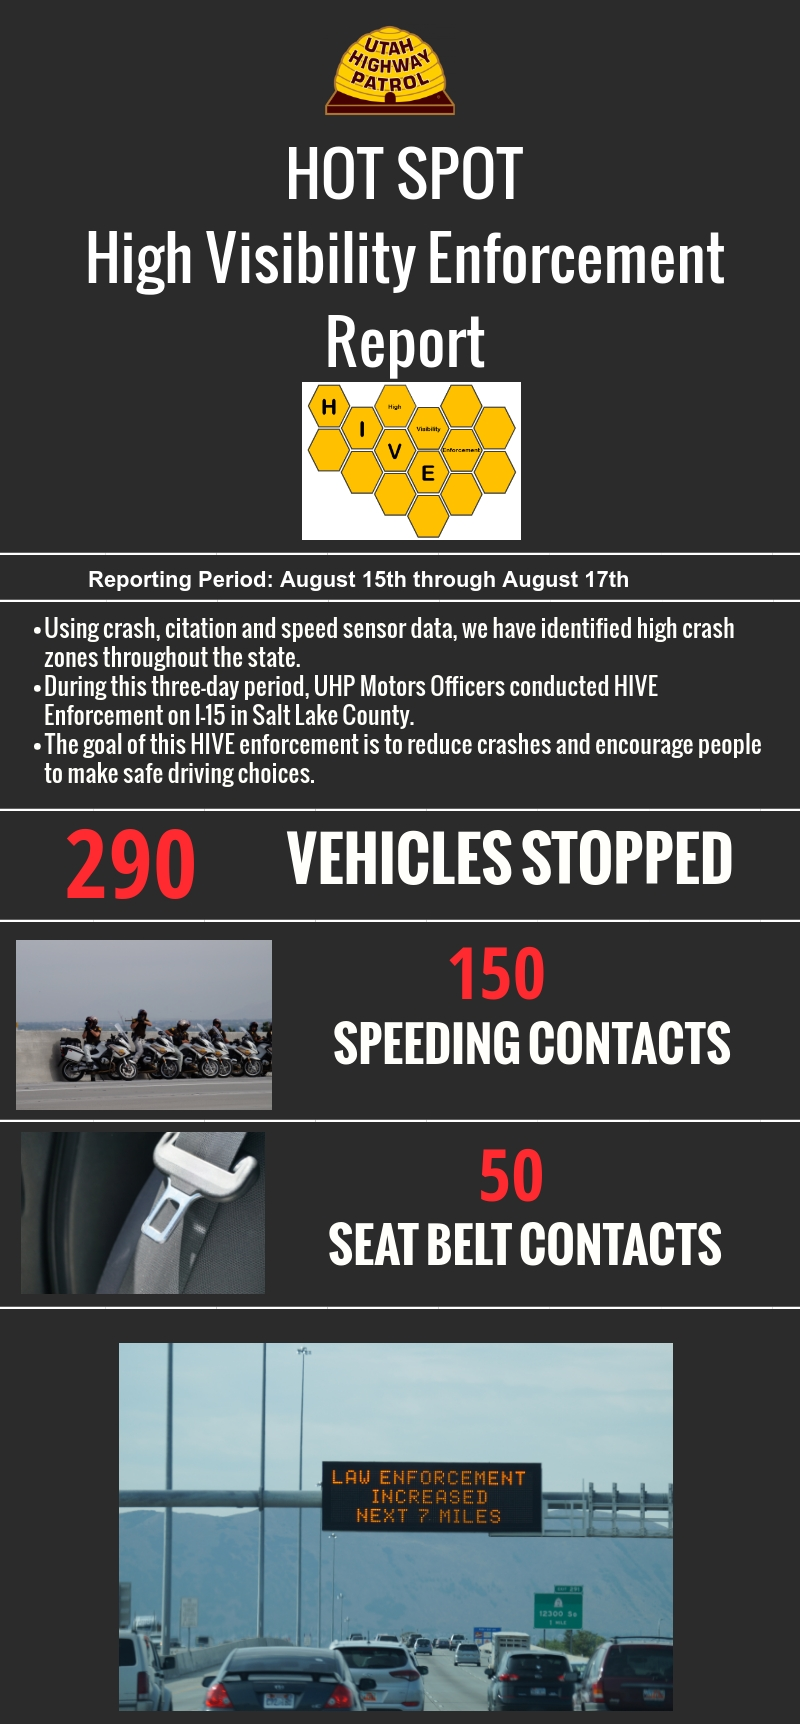 Infographic with details about HIVE enforcement conducted by motor squad August 15th through 17th. They stopped 290 vehicles, had 150 speeding contacts and 50 seat belt contacts.